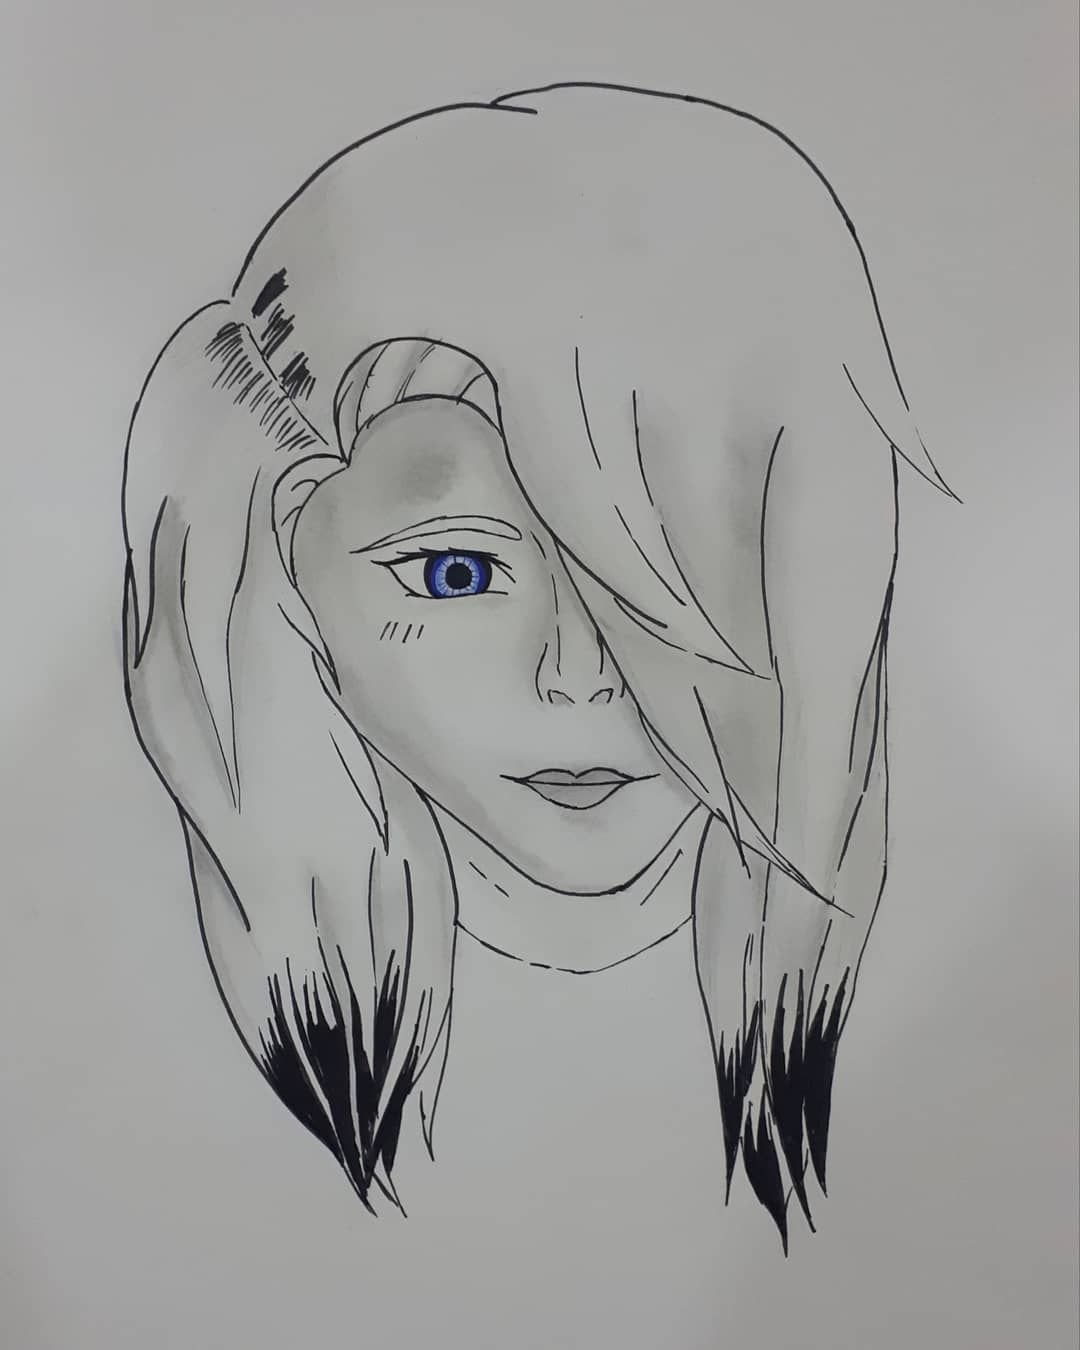 New Dawing! (I tried ) #art #artist #draw #drawing #female #femaledrawing #face #head #eye  New Dawing! (I tried ) #art #artist #draw #drawing #female #femaledrawing #face #head #eye #myowndrawing #shaders #itried #realisticdrawing #realistic #hair #hairstyle #girl #girldrawing #facedrawing #coloredeyes #coloredeye #drawingonpaper #15mindrawing #15mins #beautifulgirl #work #trying